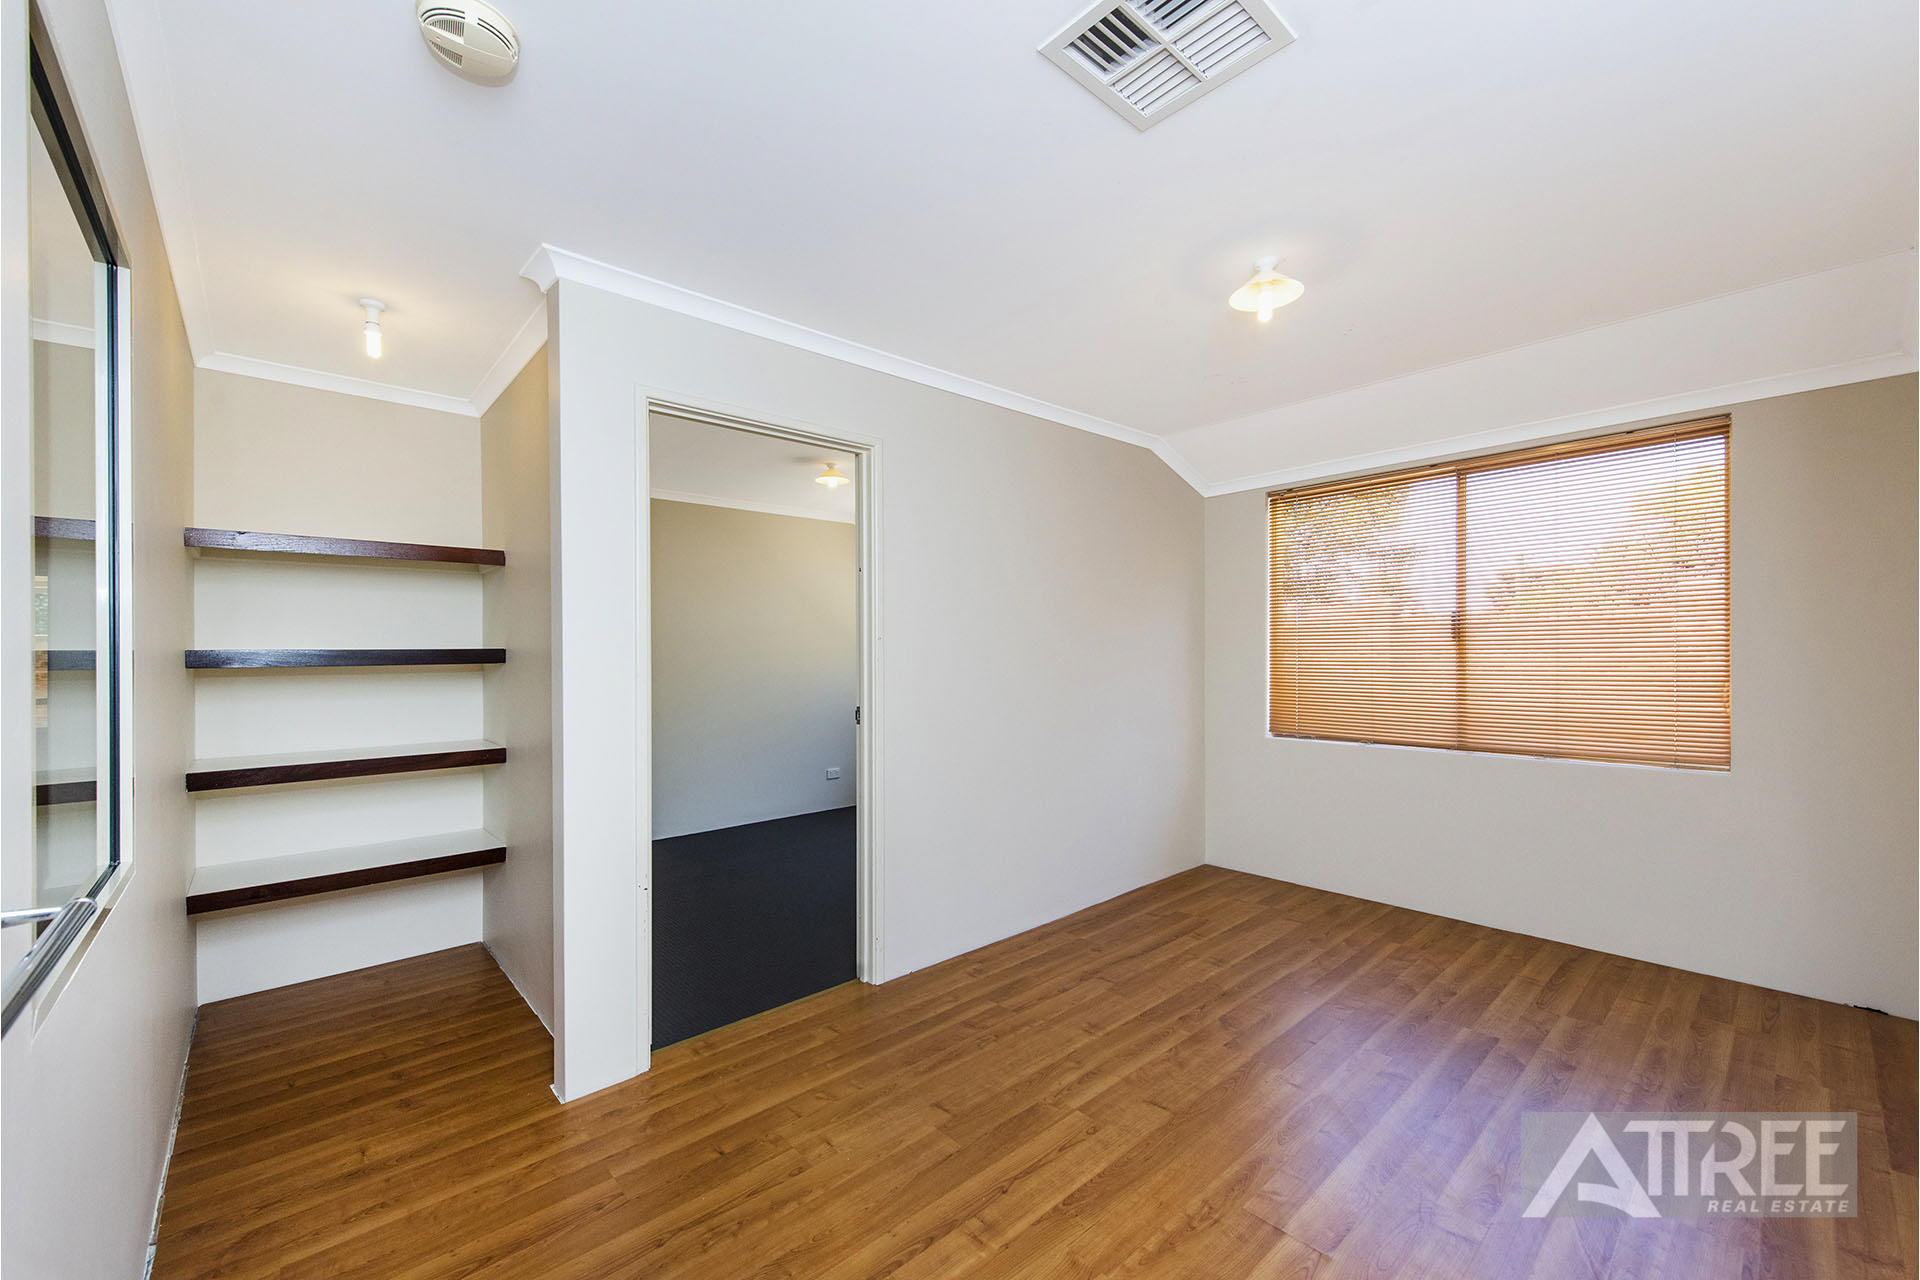 Property for sale in CANNING VALE, 24 Lansdowne Entrance : Attree Real Estate